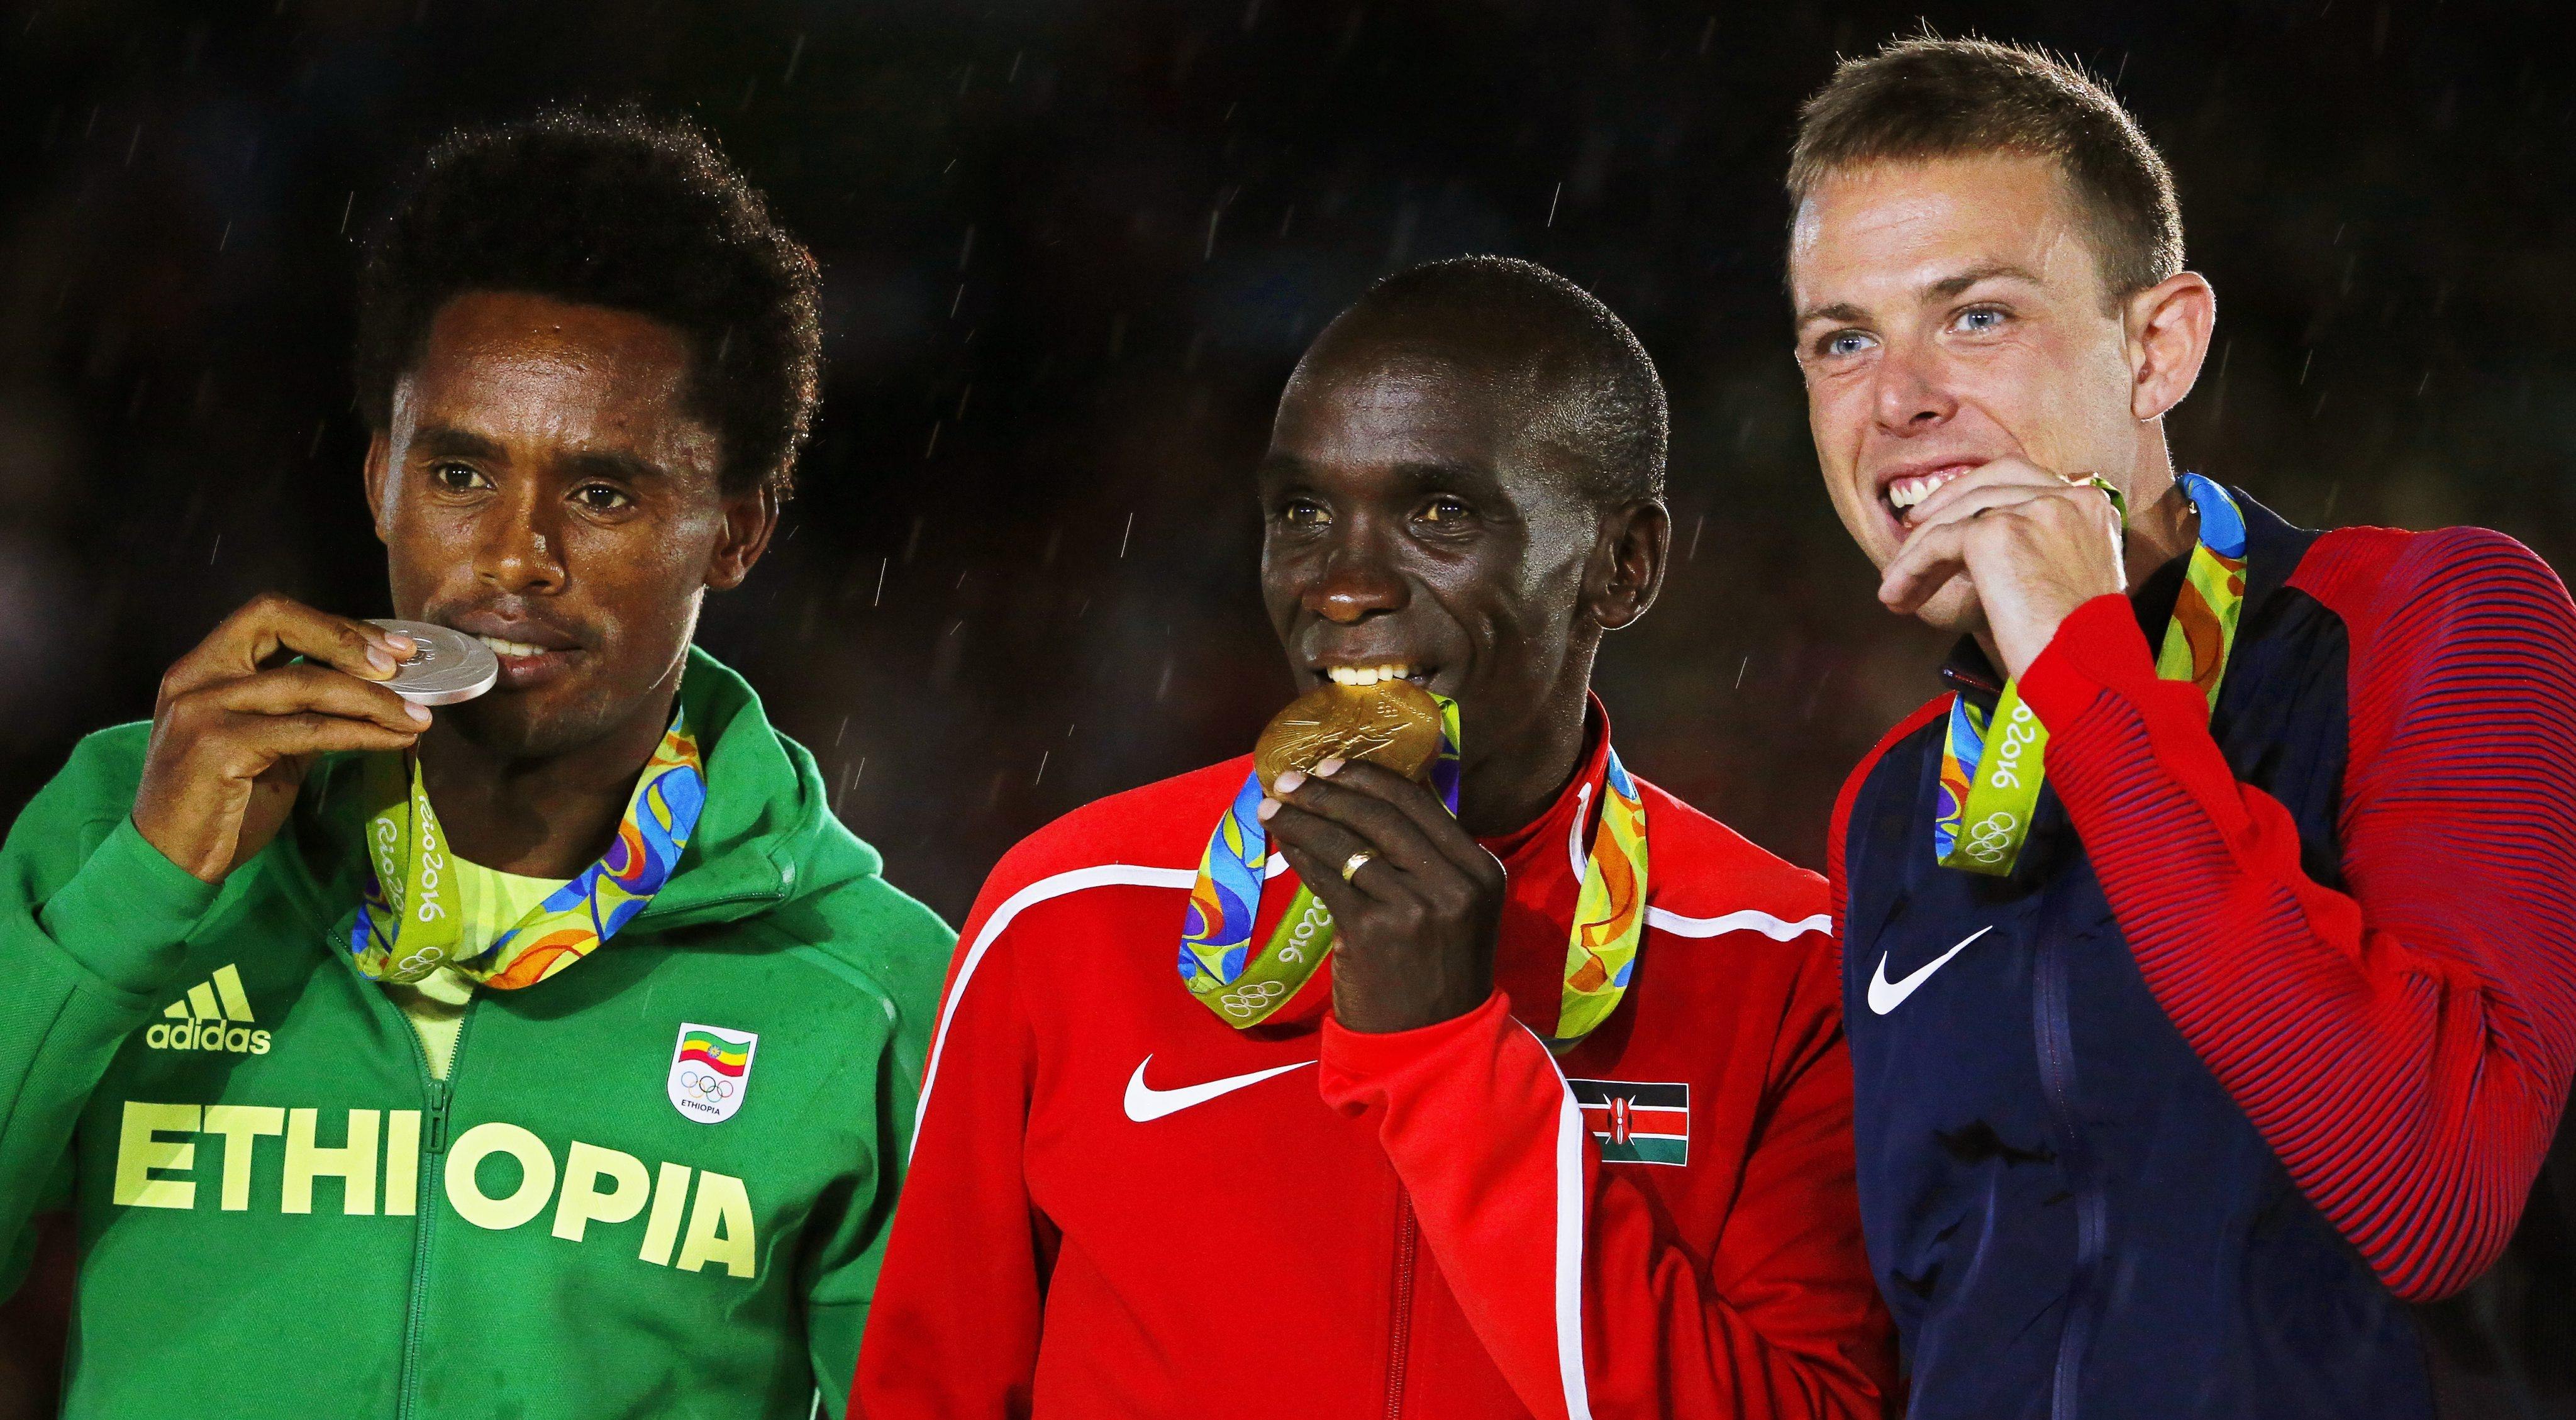 . Rio De Janeiro (Brazil), 21/08/2016.- Eliud Kipchoge (C) of Kenya poses with his gold medal on the podium after winning the men's Marathon race of the Rio 2016 Olympic Games Athletics, Track and Field events at the Sambodromo in Rio de Janeiro, Brazil, 21 August 2016. Kipchoge won ahead of second placed Feyisa Lilesa (L) of Ethiopia and third placed Galen Rupp (R) of the USA. (Atletismo, Etiopía, Brasil, Kenia, Estados Unidos) EFE/EPA/SERGEI ILNITSKY